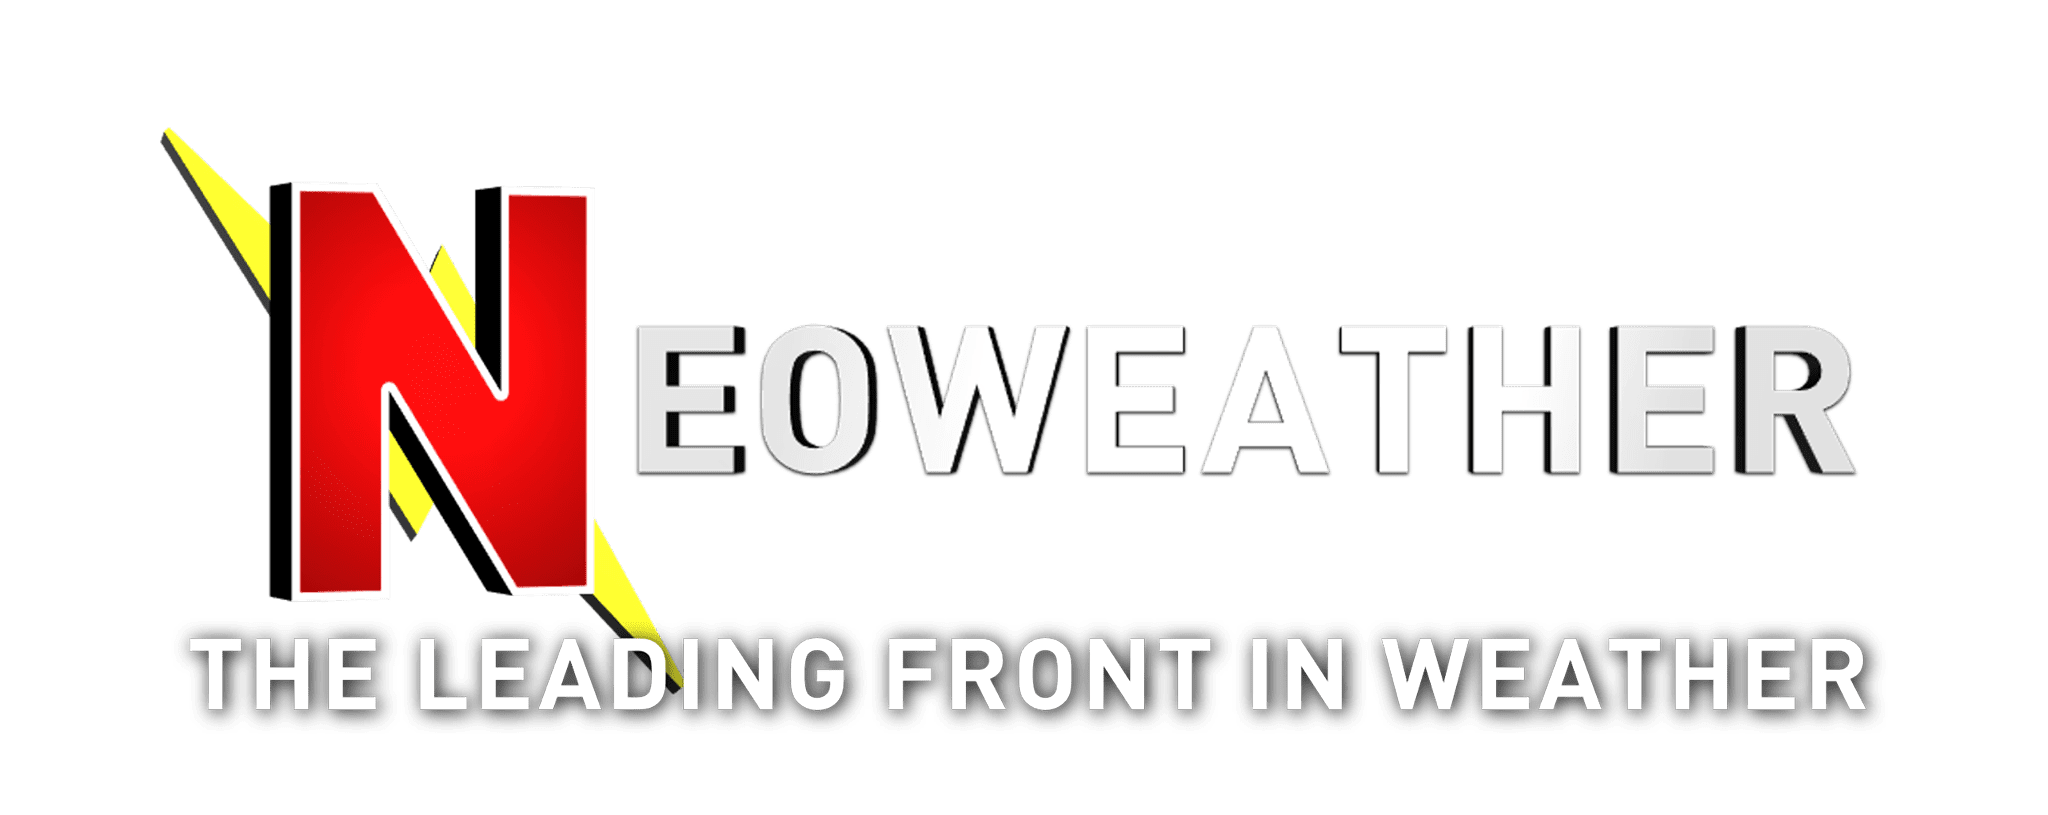 Neoweather, LLC